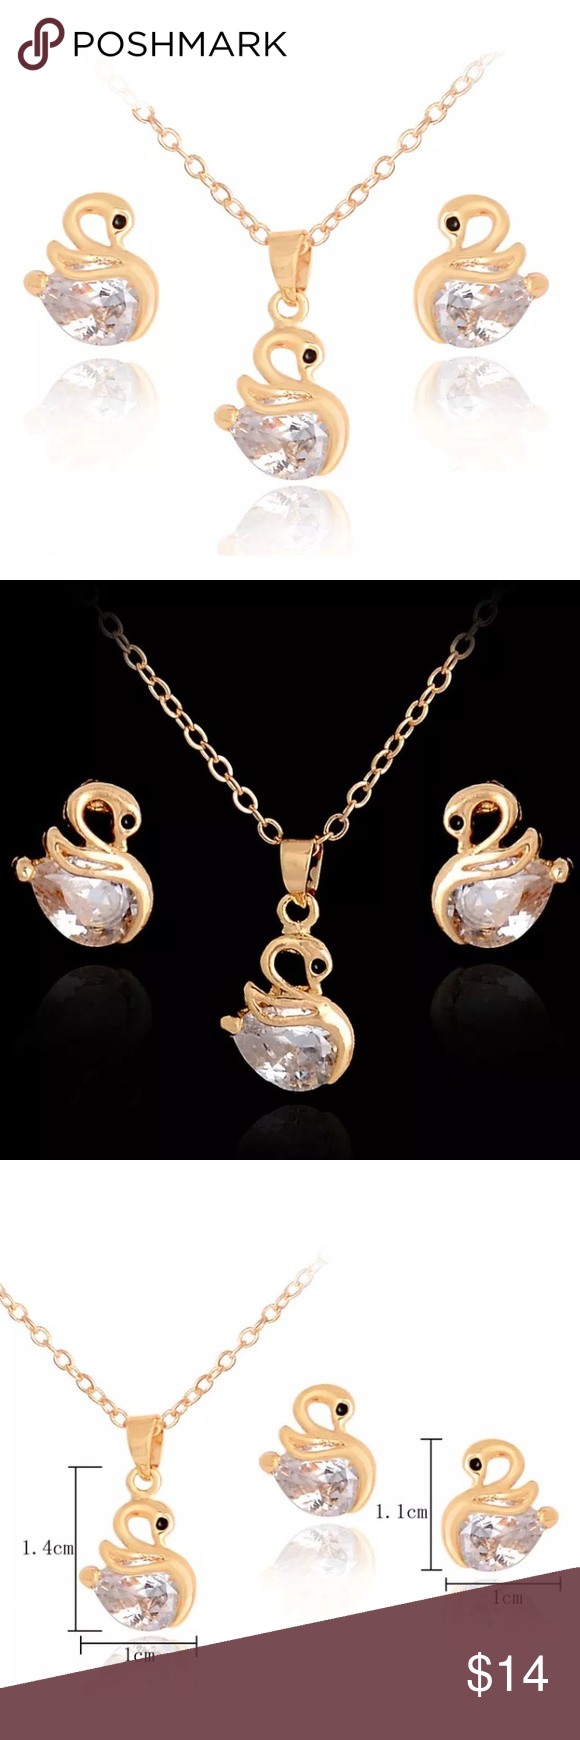 Gold swan necklace and earring set pinterest swans elegant and